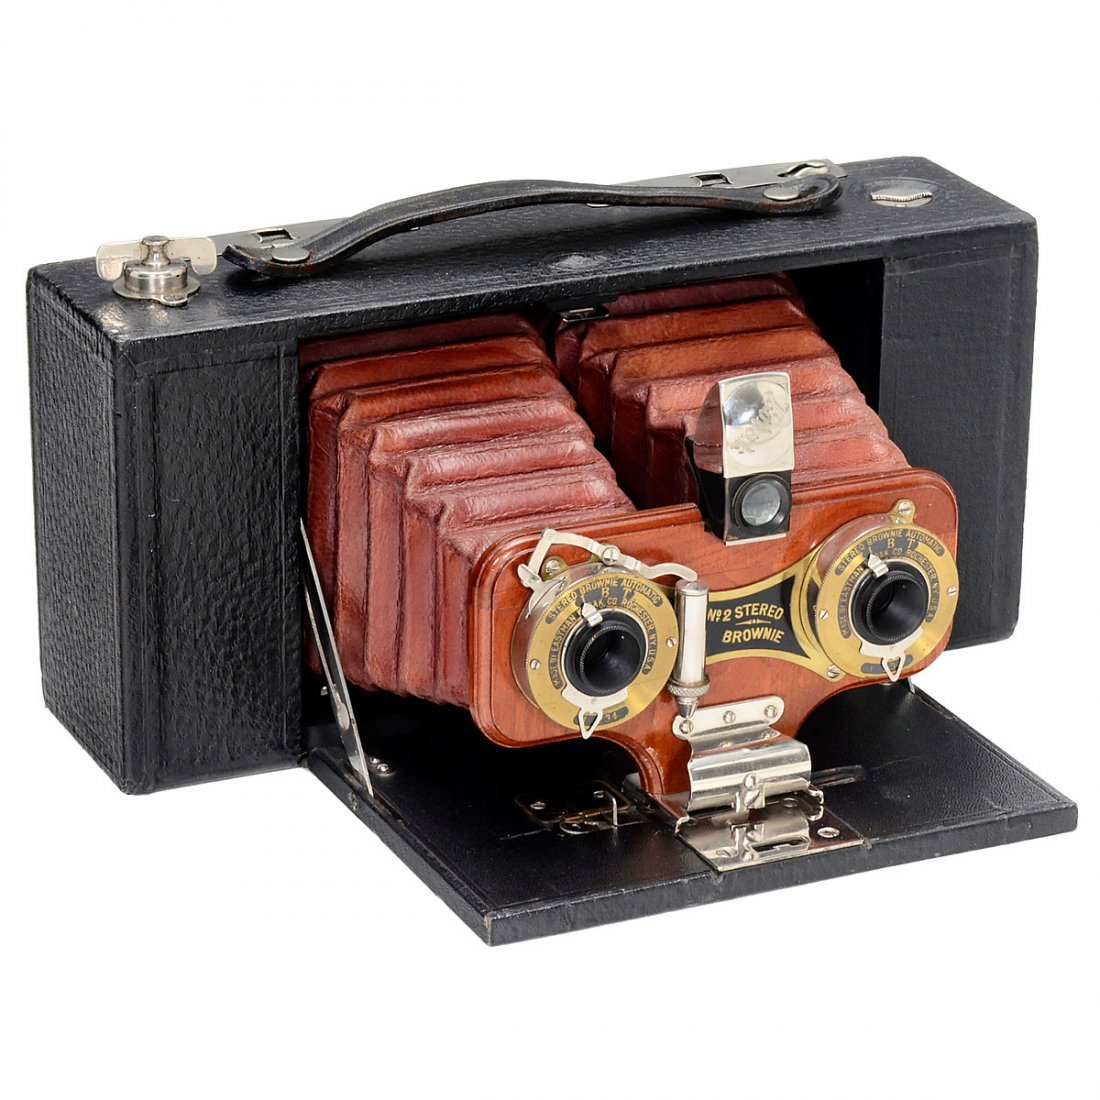 Kodak No. 2 Stereo Brownie, 1905